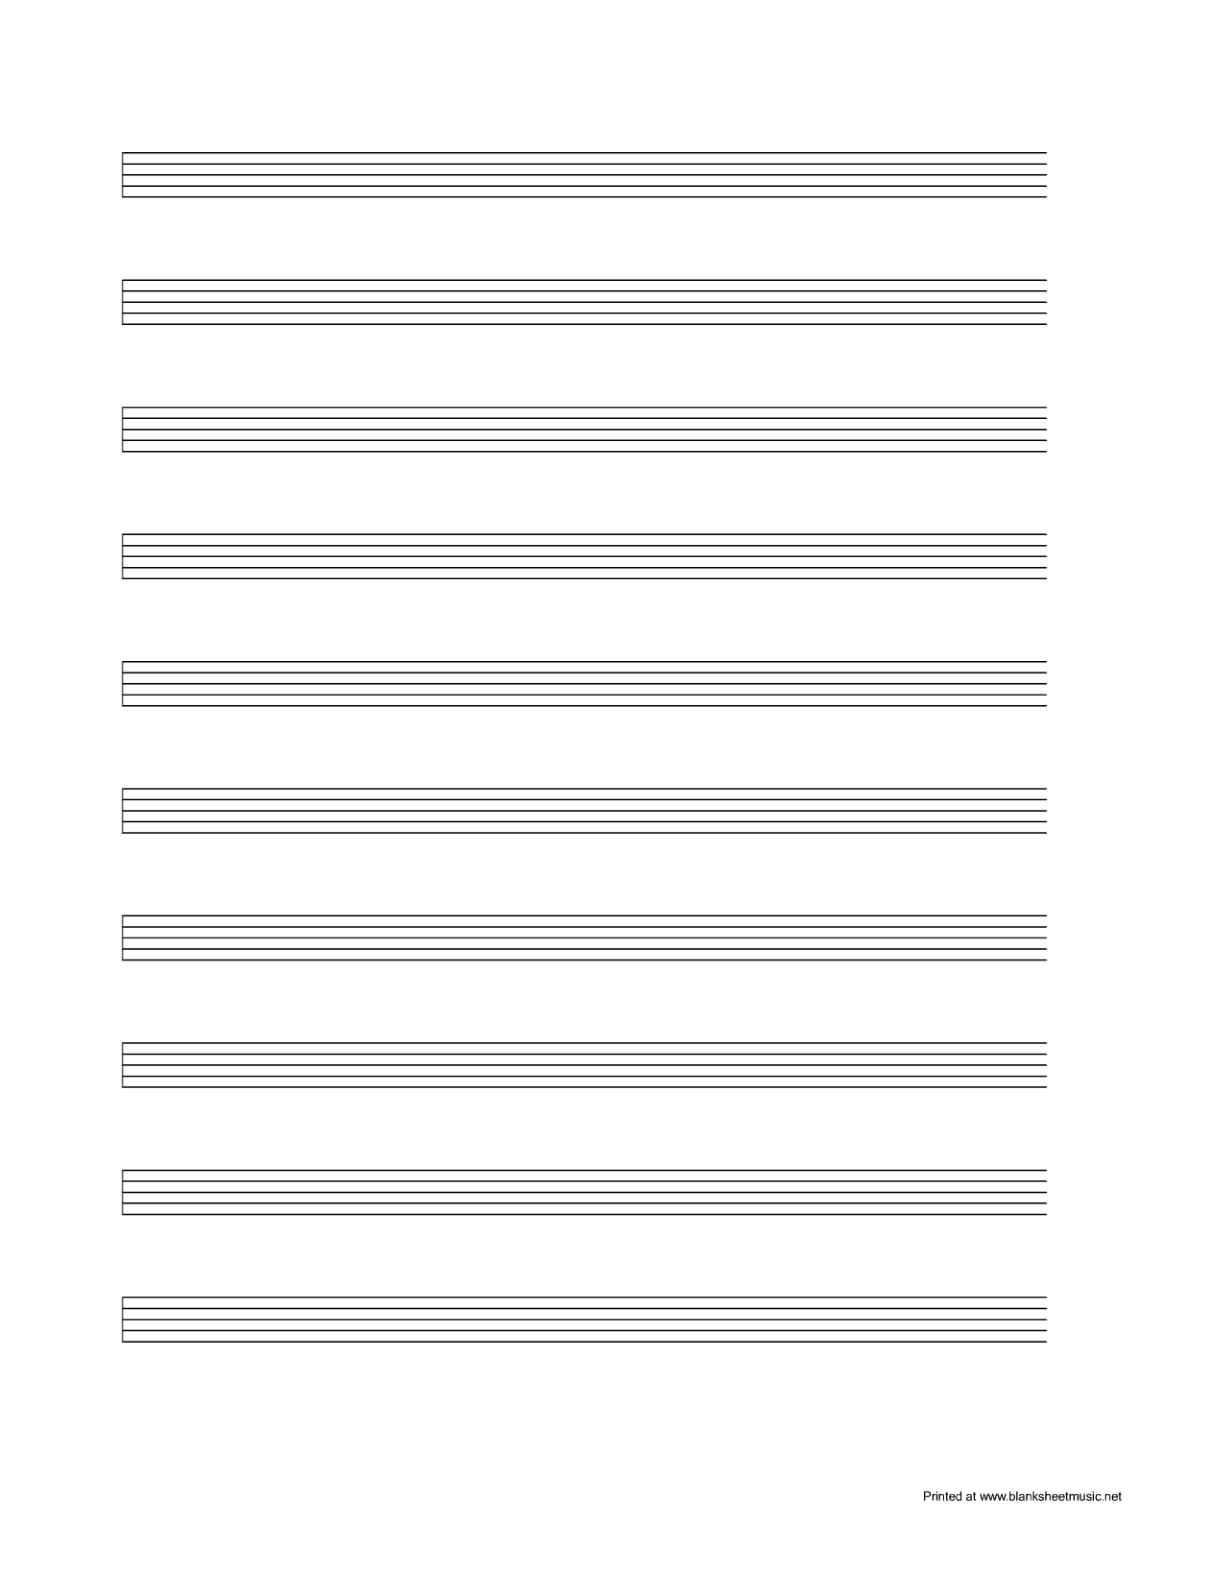 Sheet Music Template Blank For Word Free Pdf Spreadsheet Regarding Blank Sheet Music Template For Word